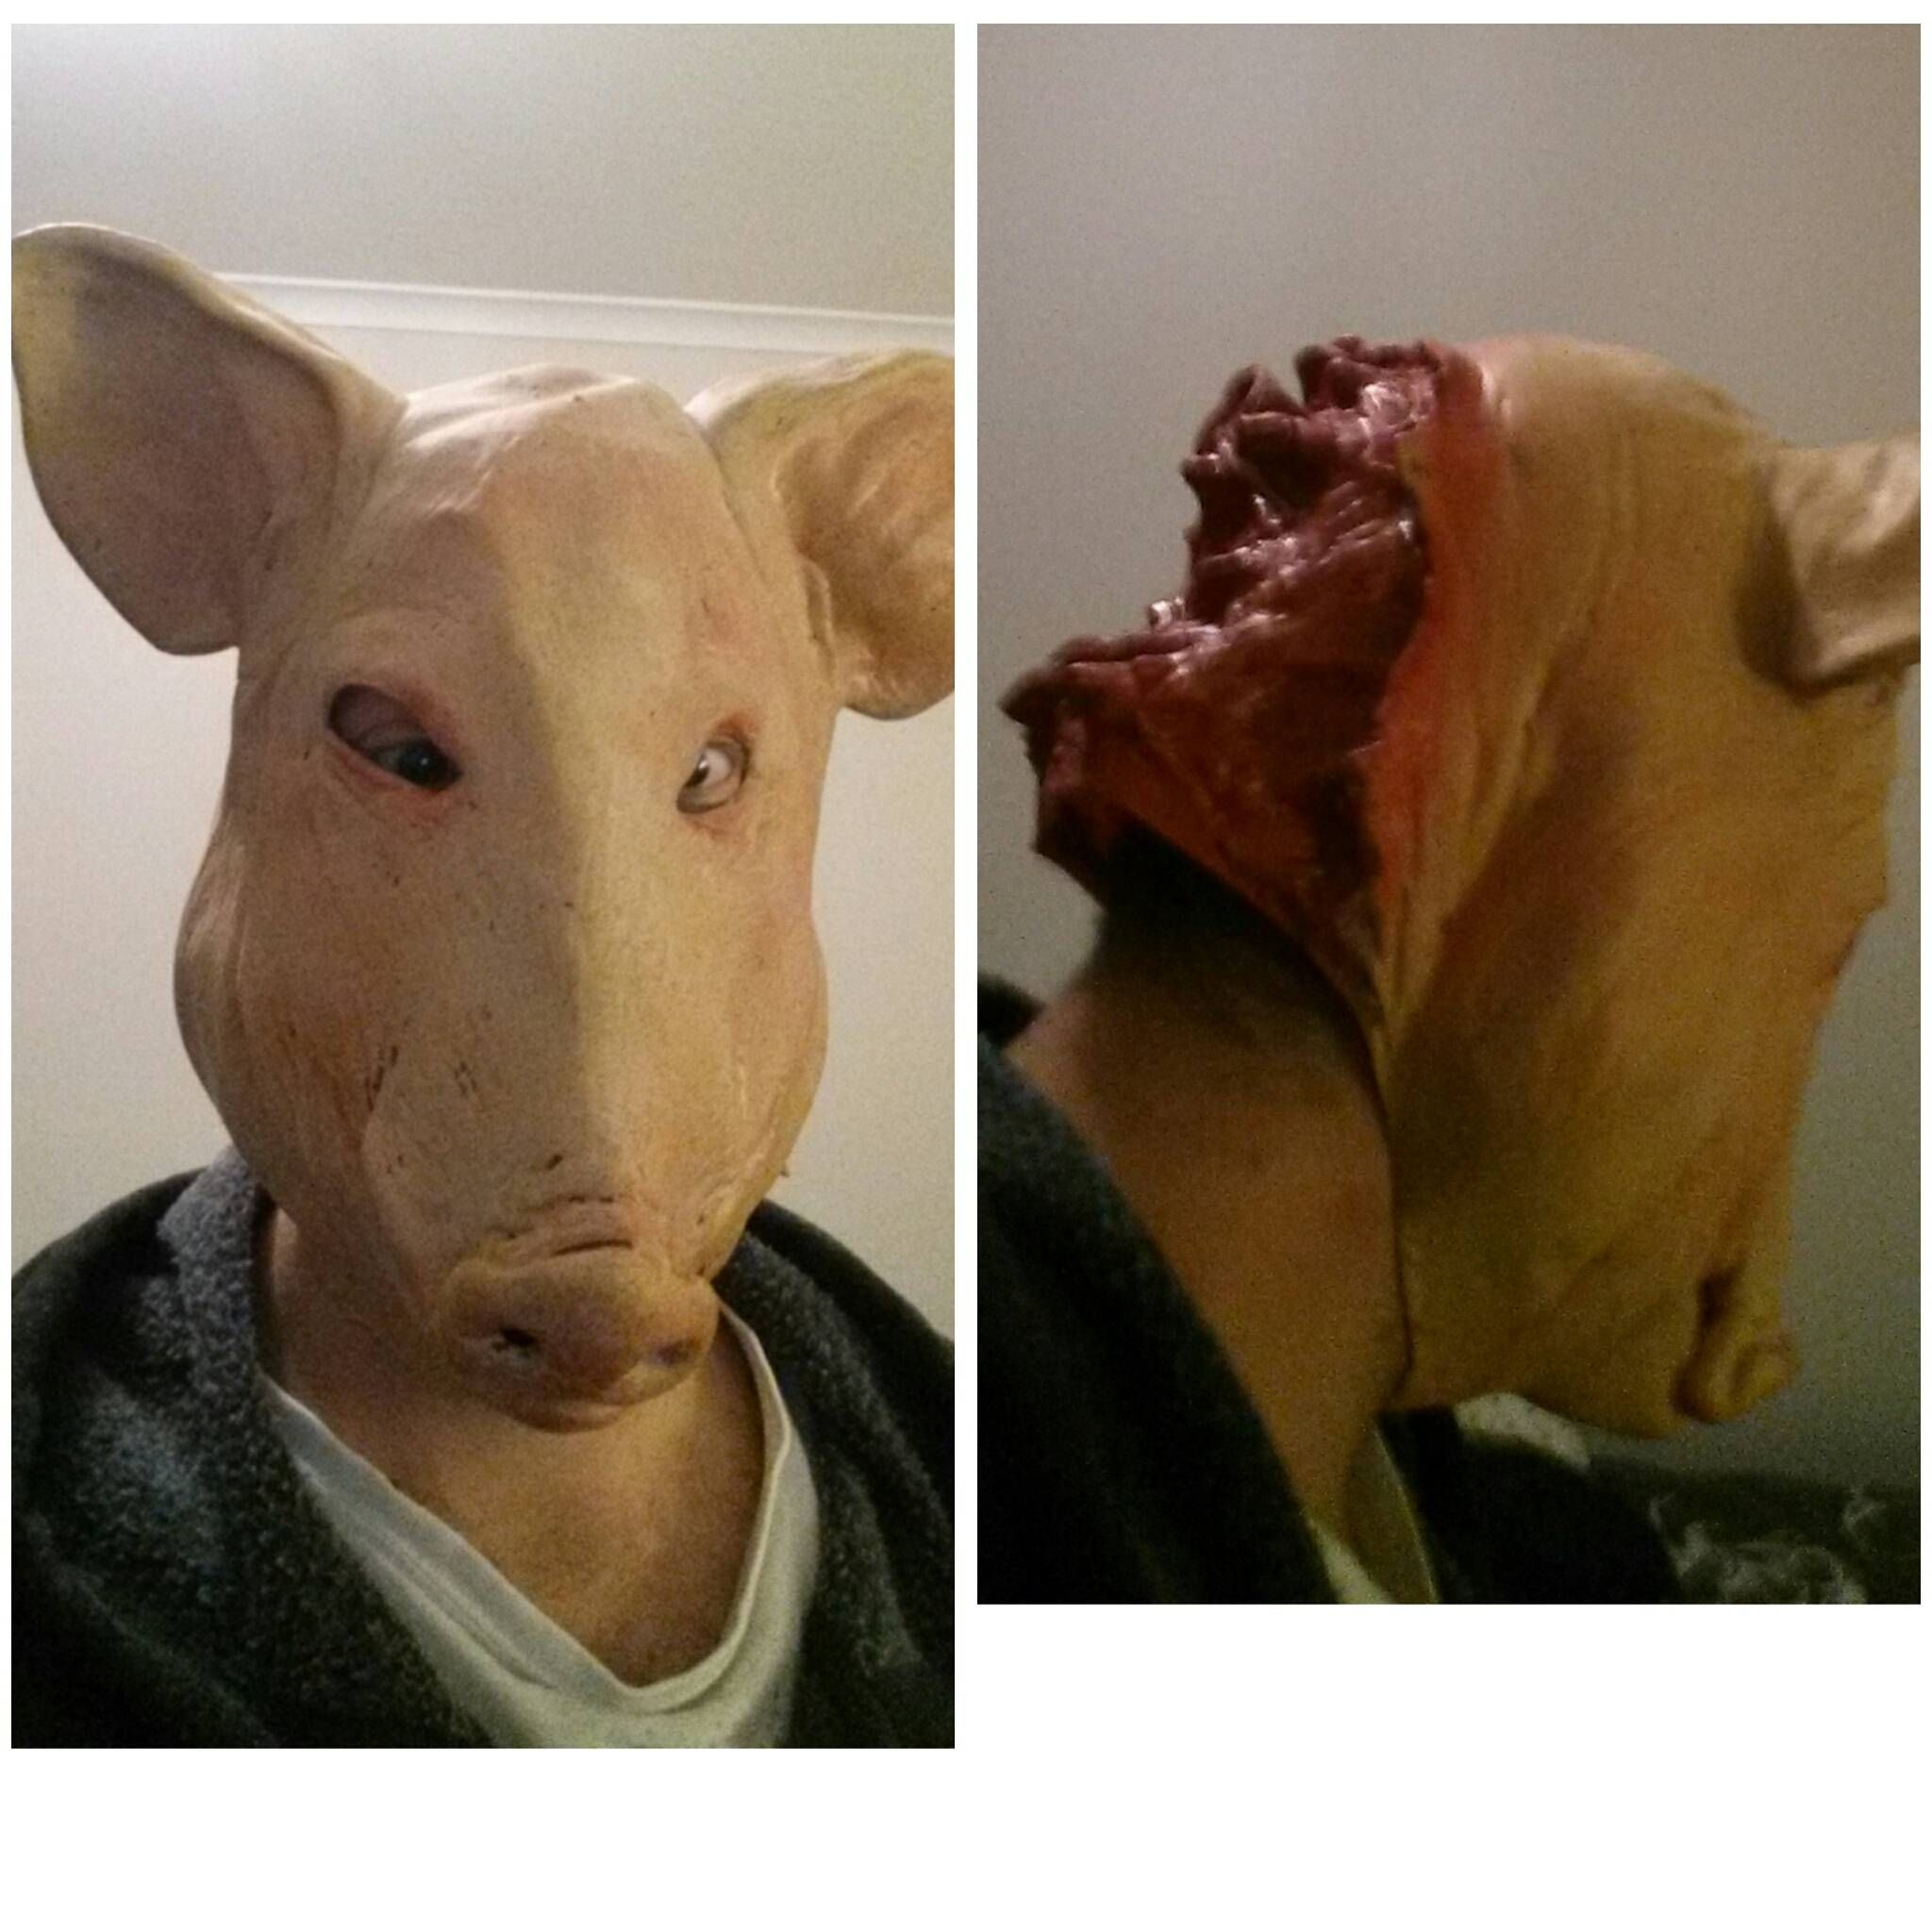 Picked up an awesomely creepy pig mask off eBay | Pig mask and Masking